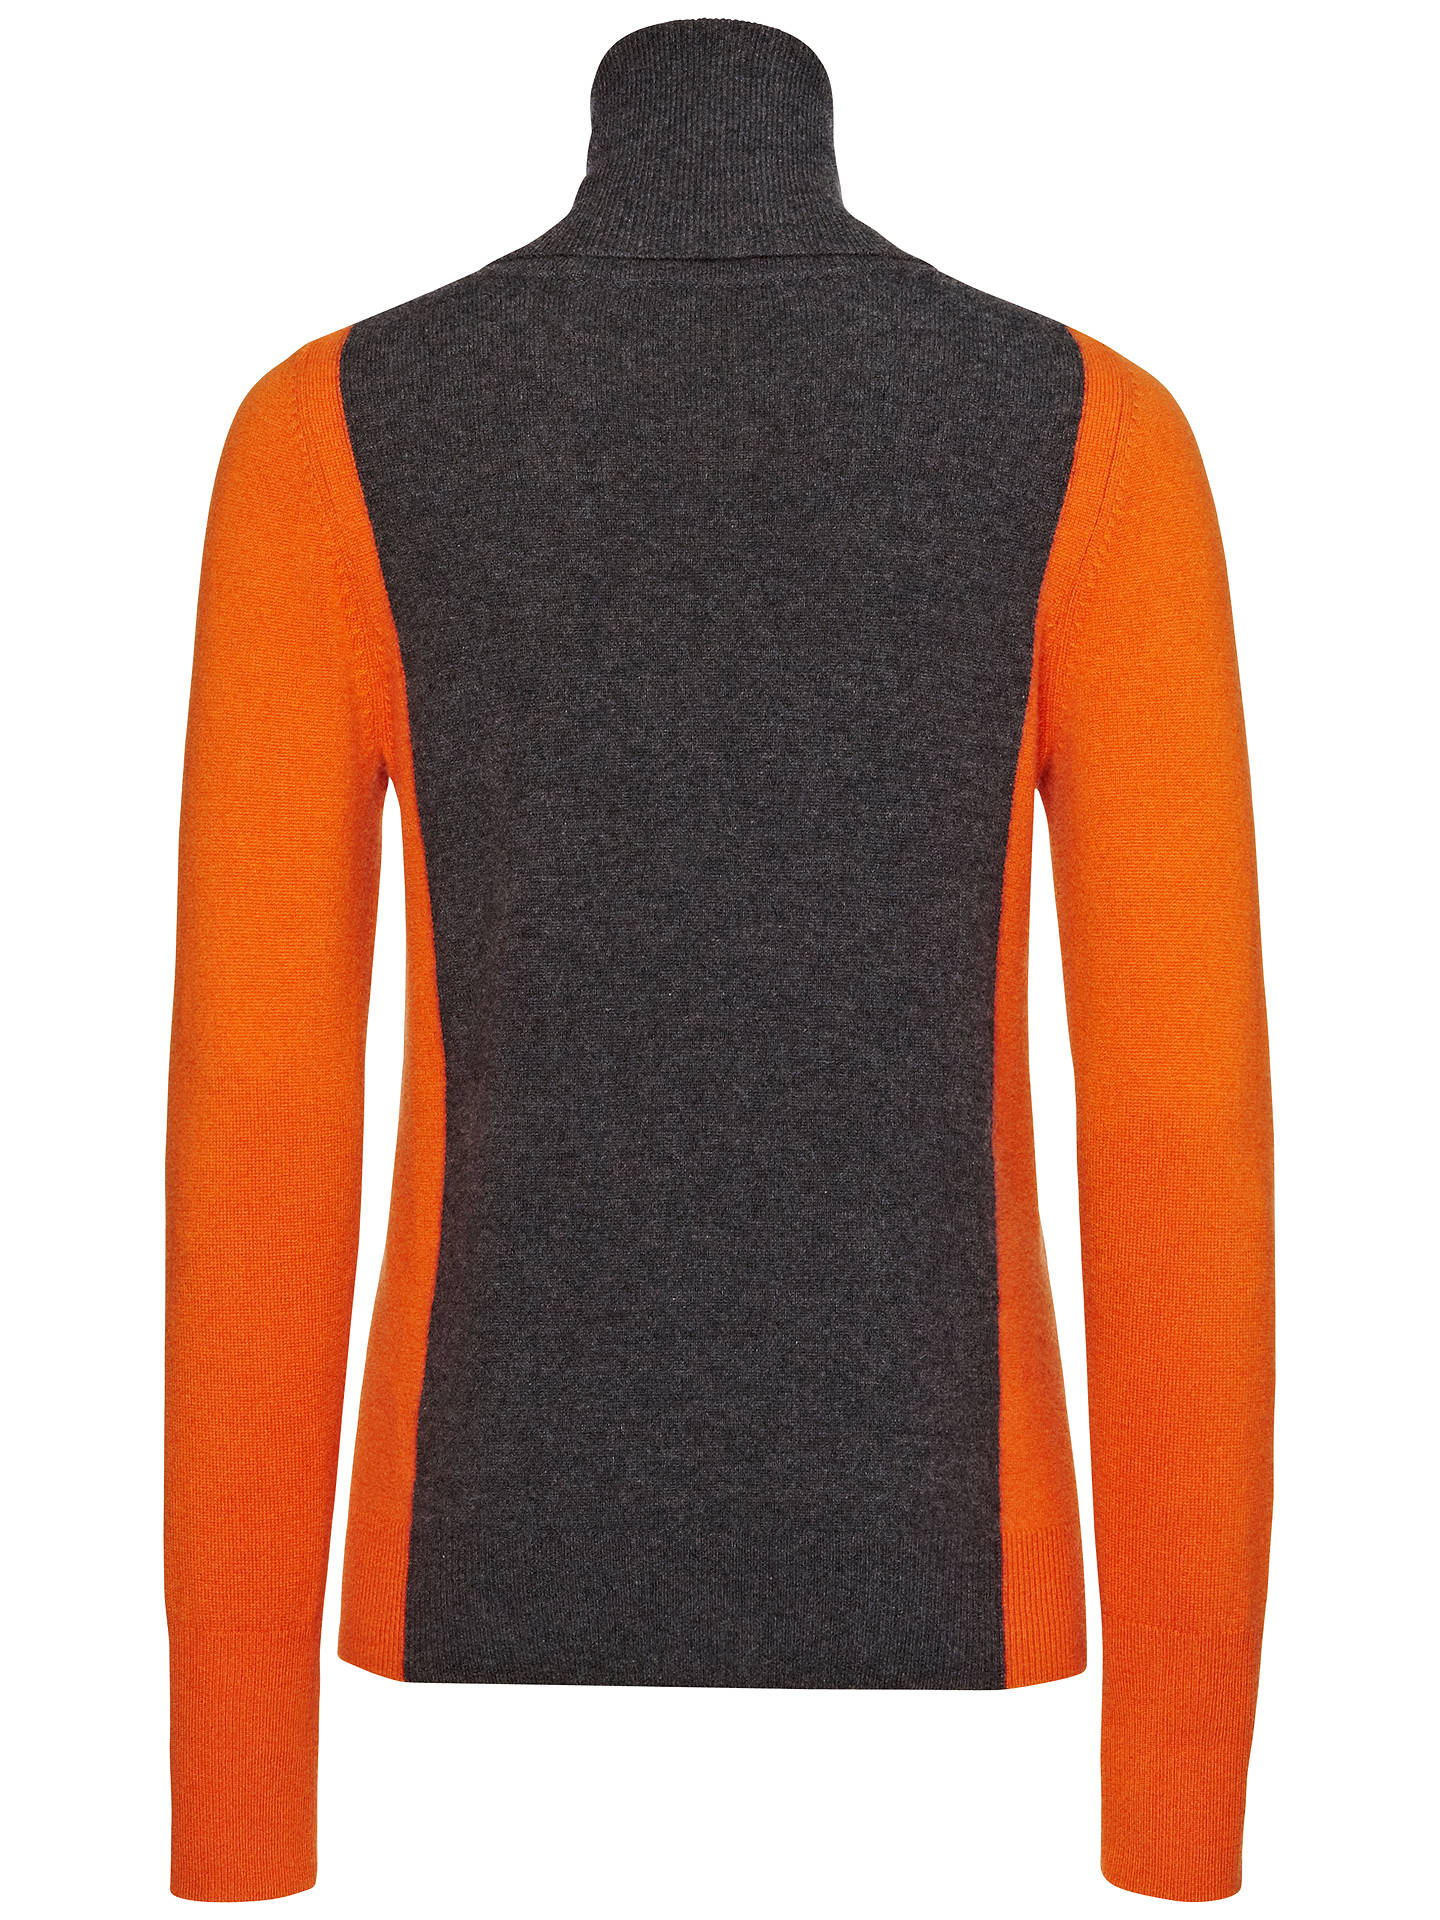 Jaeger Colour Block Cashmere Roll Neck Sweater, Charcoal